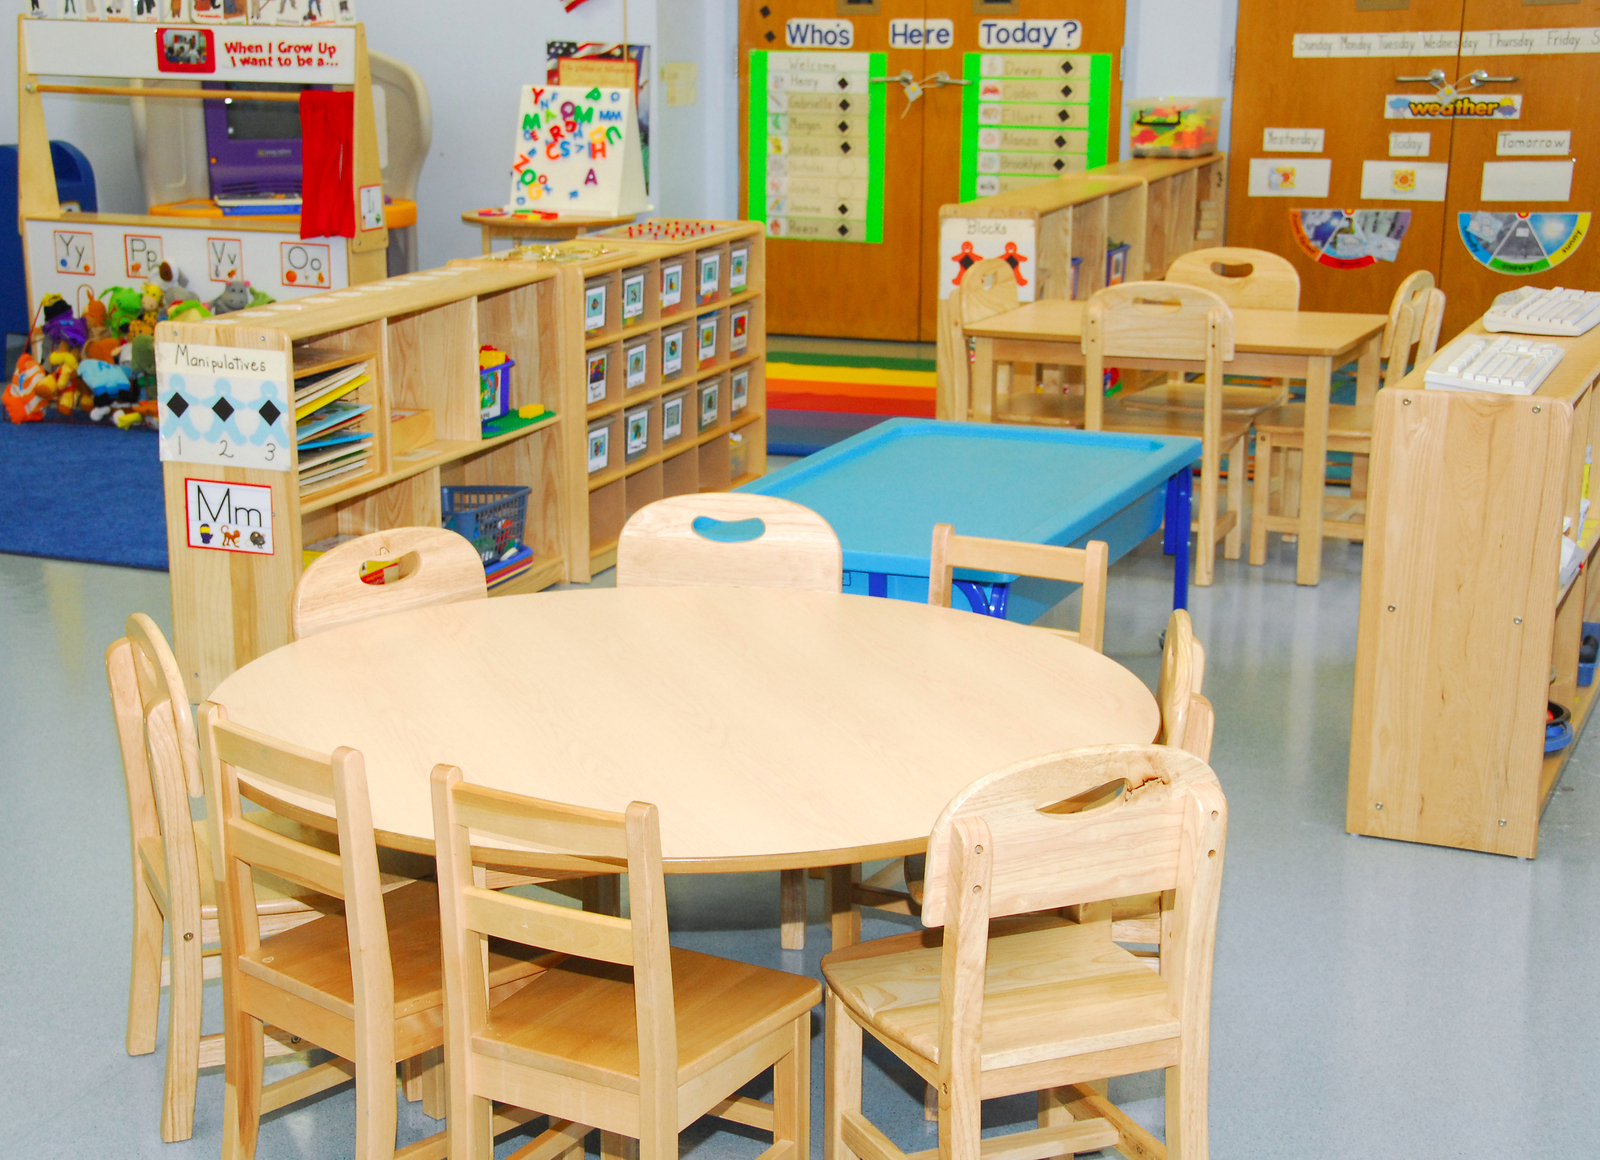 Classroom Safety And Cleanliness In Preschool